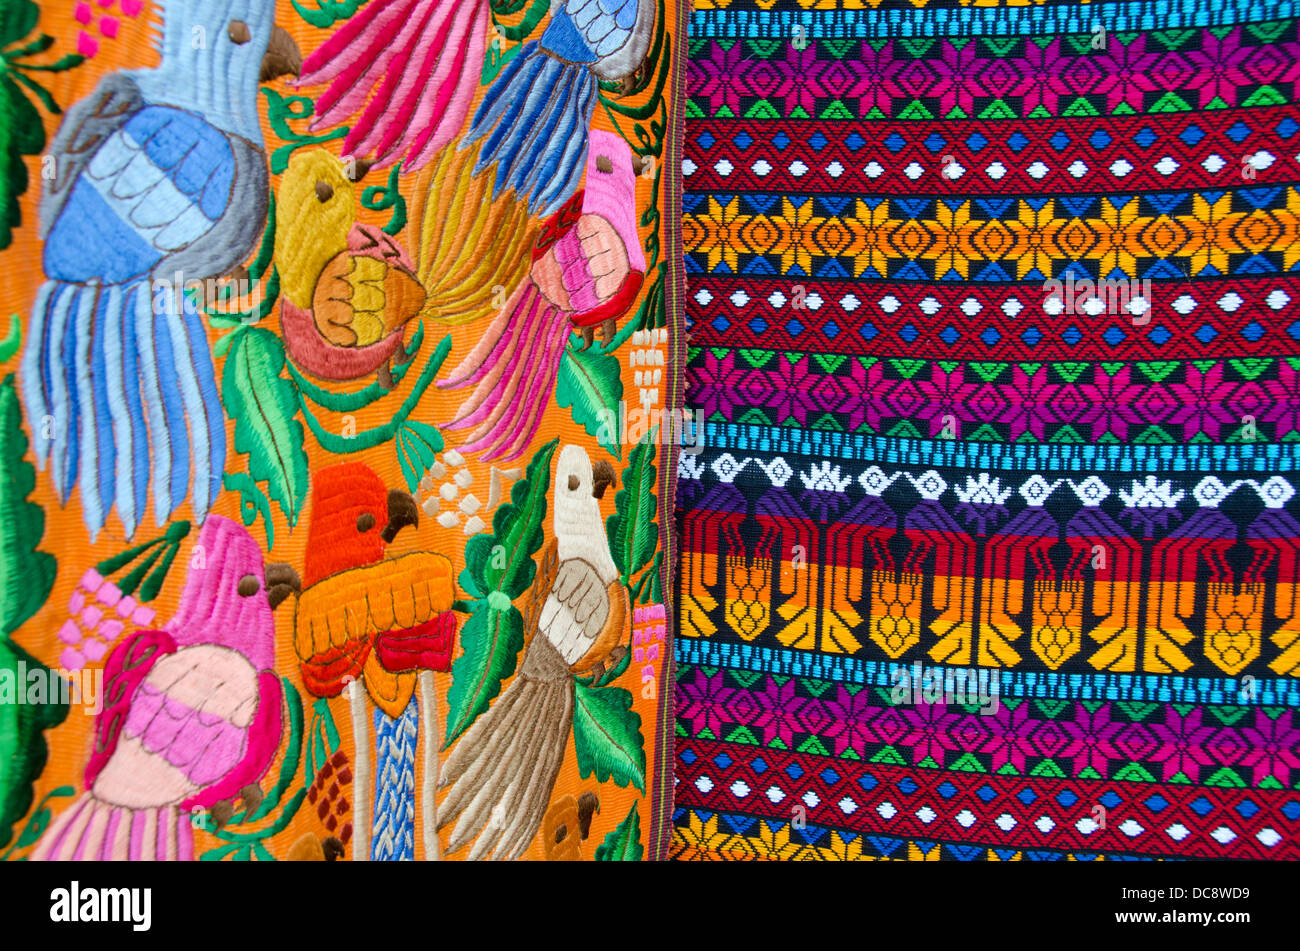 Guatemala, Livingston. Colorful traditional embroidery textile with tropical birds, specialty of Guatemala. - Stock Image